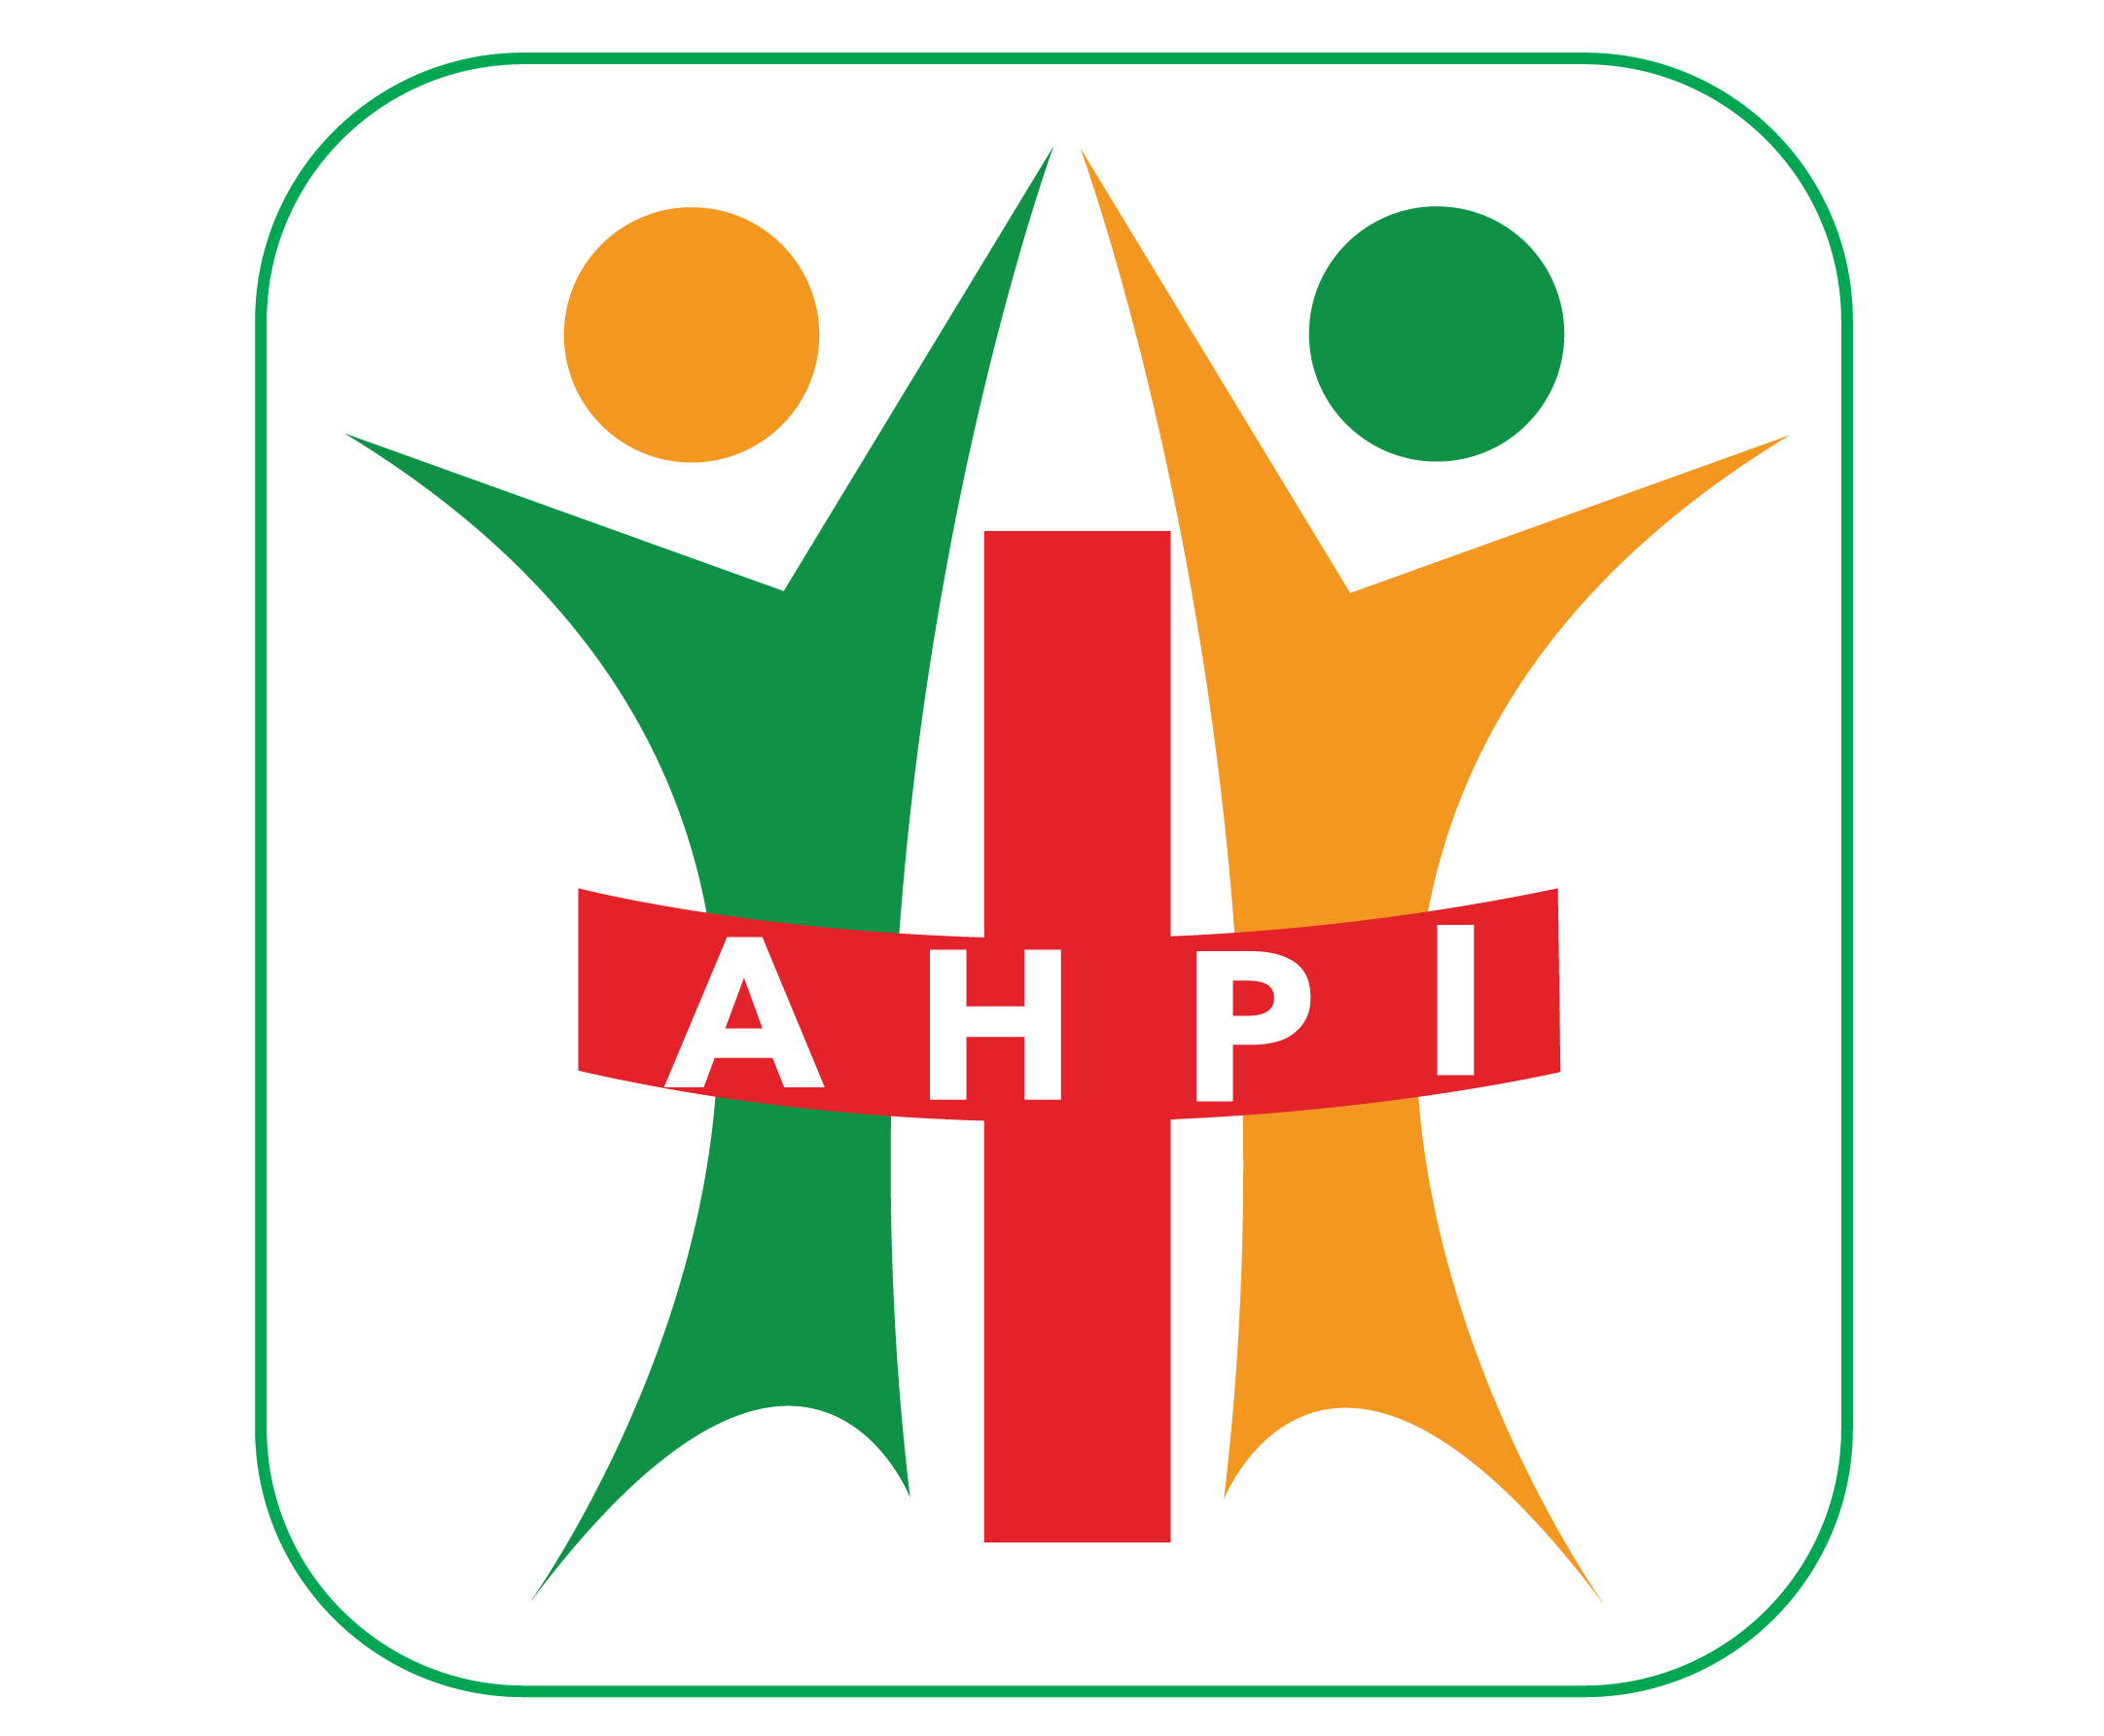 AHPI - Knowledge partner for InnoHEALTH 2018